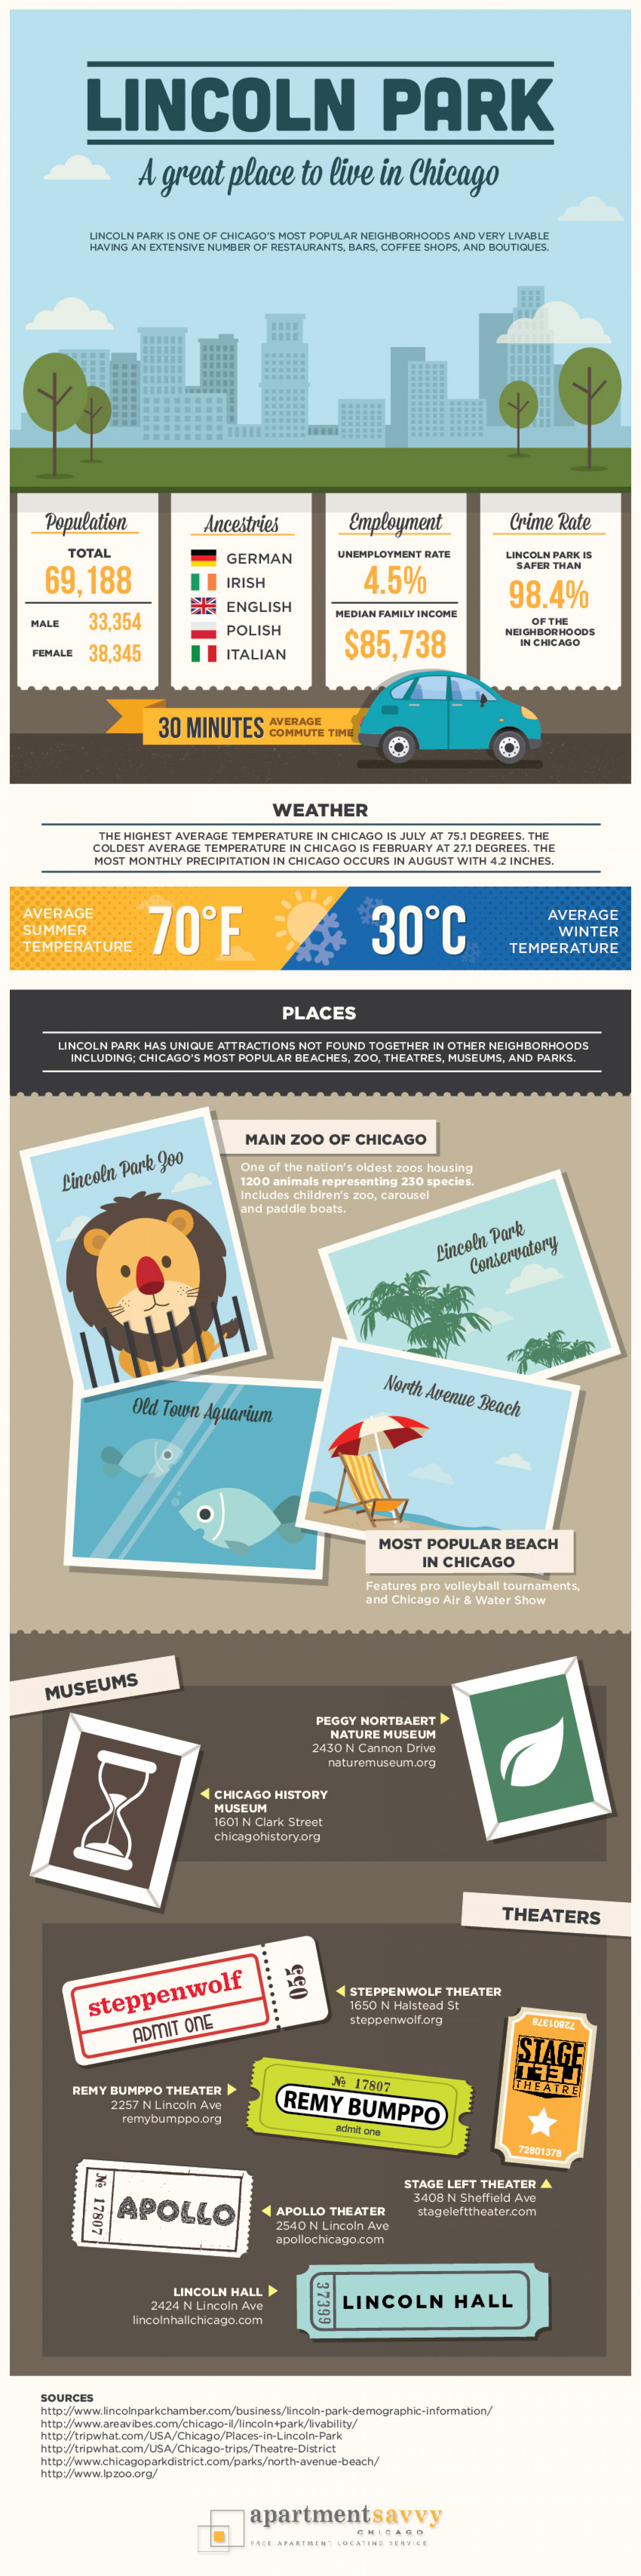 Lincoln Park: A Great Place to Live in Chicago Infographic